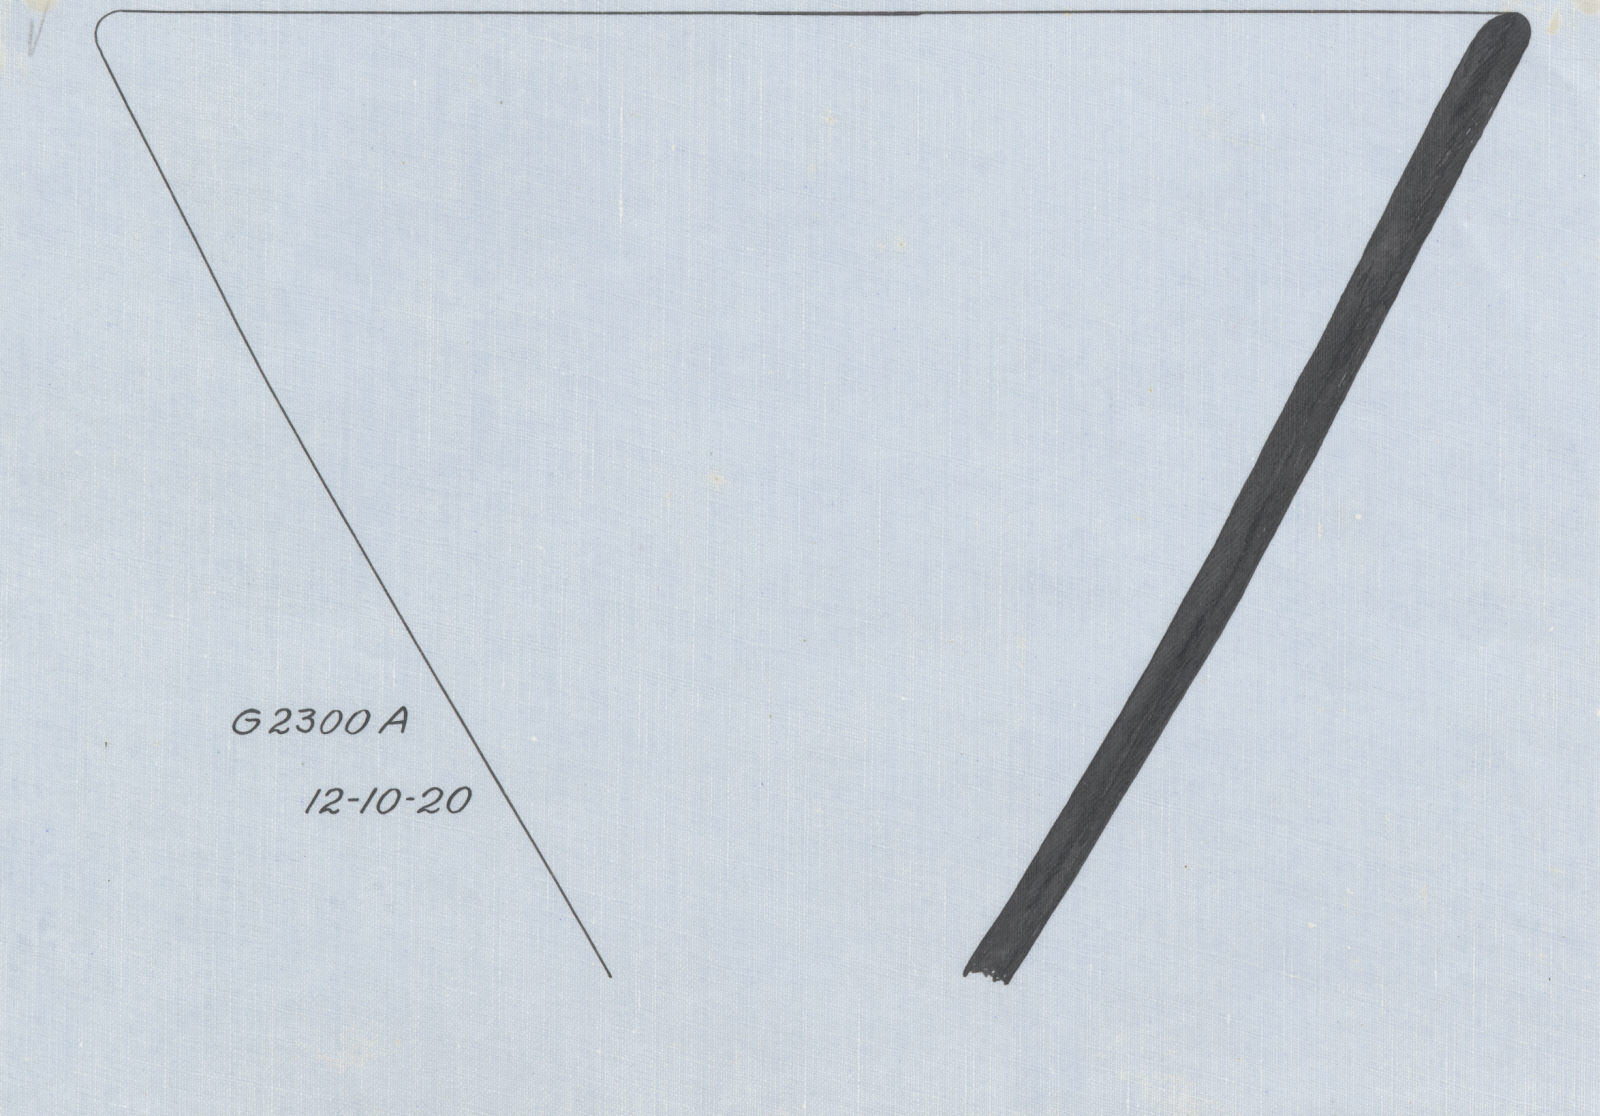 Drawings: G 2300 (= G 5190), Shaft A: pottery, bowl with flaring sides